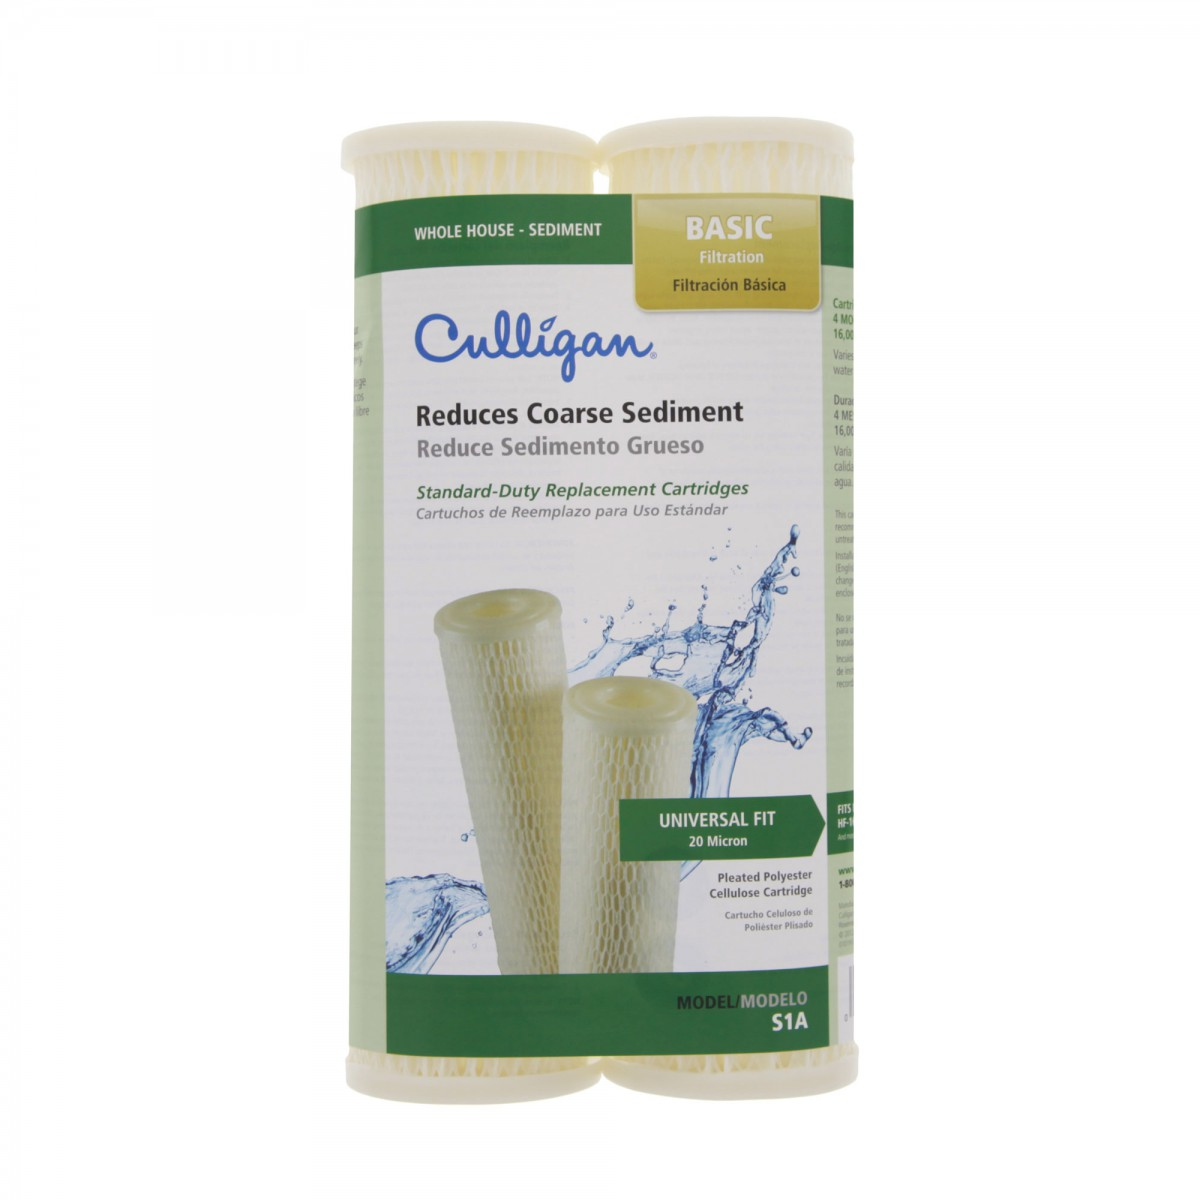 Whole House Water Sediment Filter Culligan S1 Sediment Filter 2 Pack